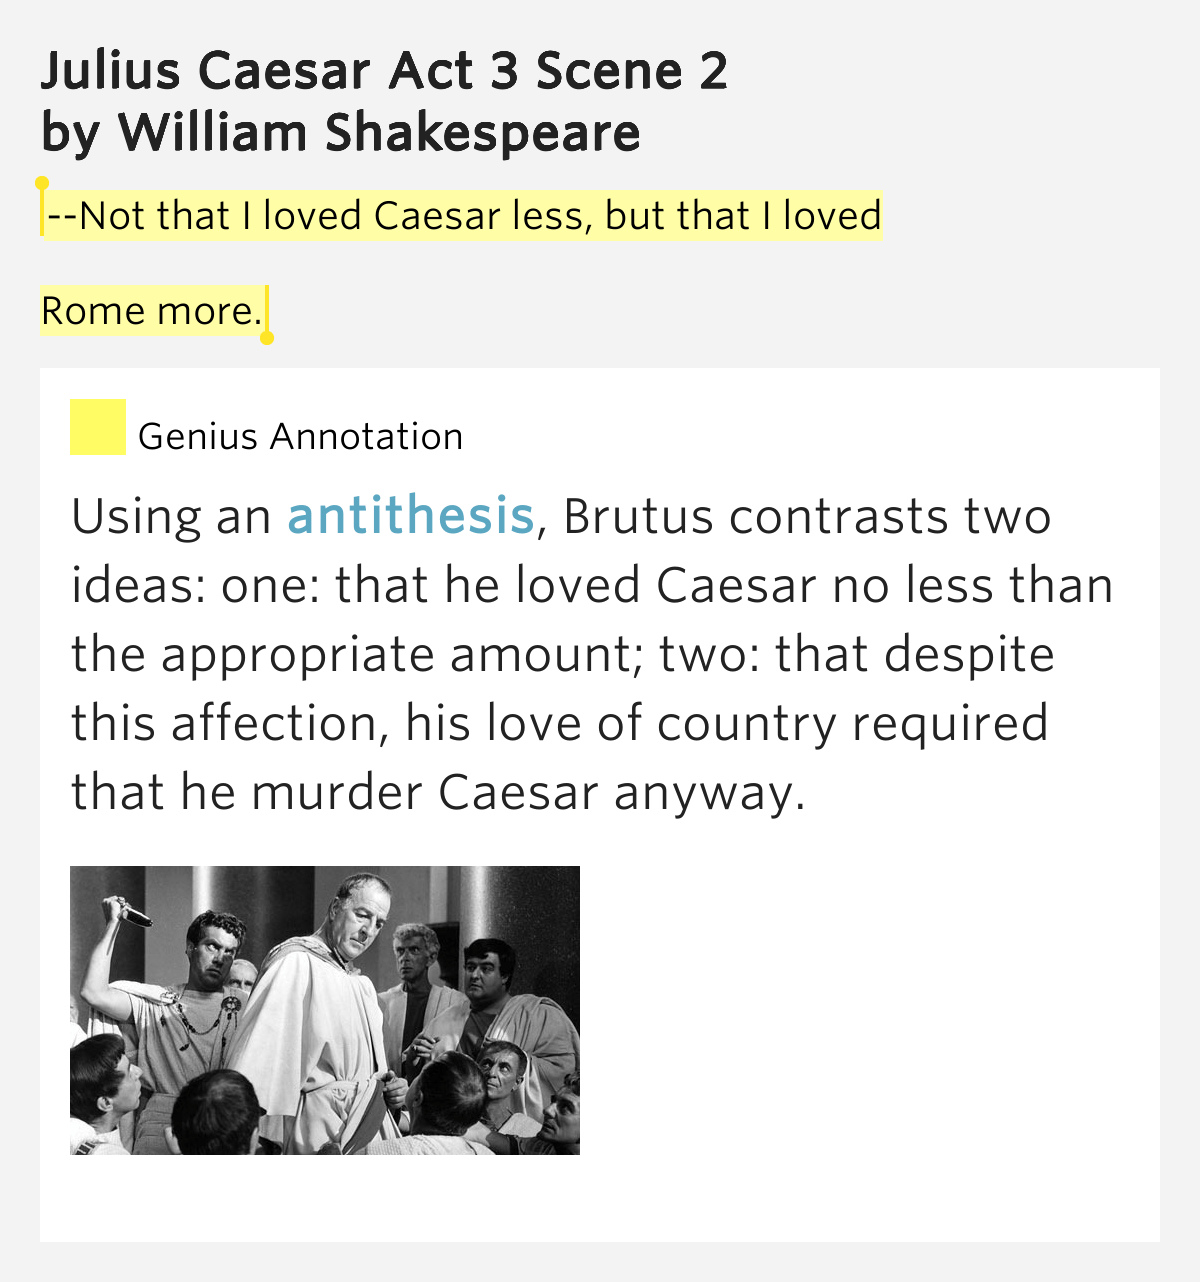 Not That I Loved Caesar Less But That I Loved Rome More Julius Caesar Act 3 Scene 2 Meaning